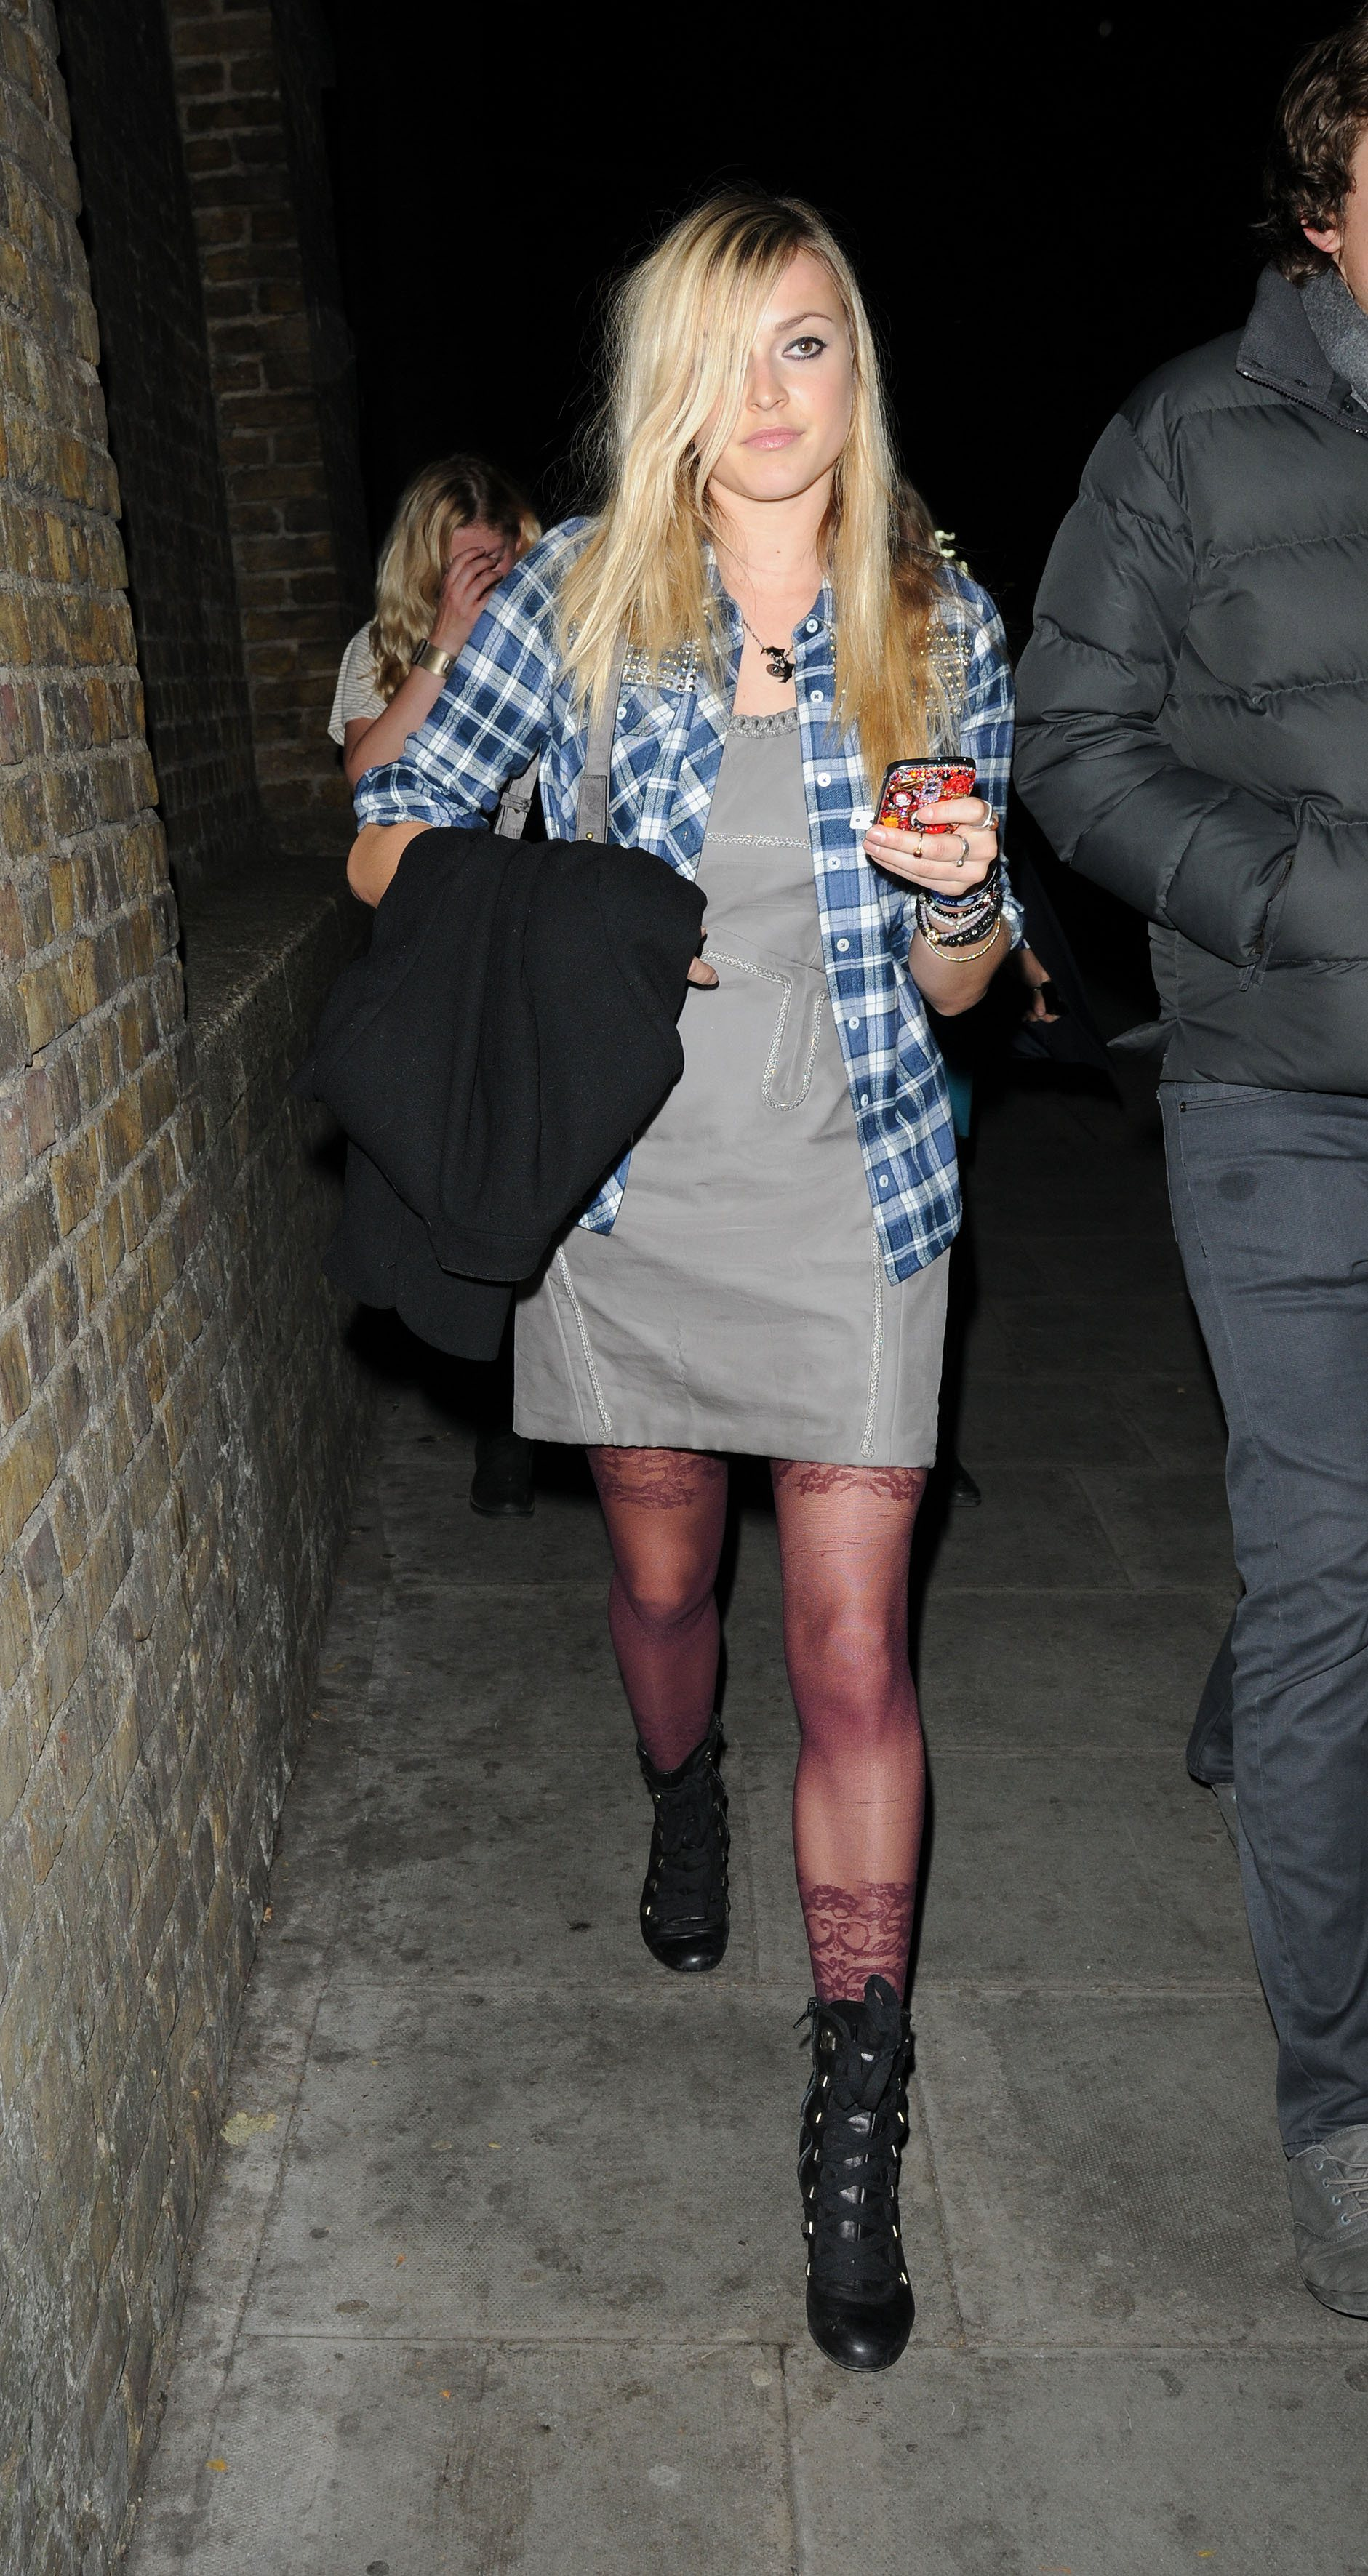 06510_Fearne_Cotton_Arrives_for_Robbie_Williams_gig_as_part_of_BBC_Electric_Proms_Festival_08_122_165lo.jpg